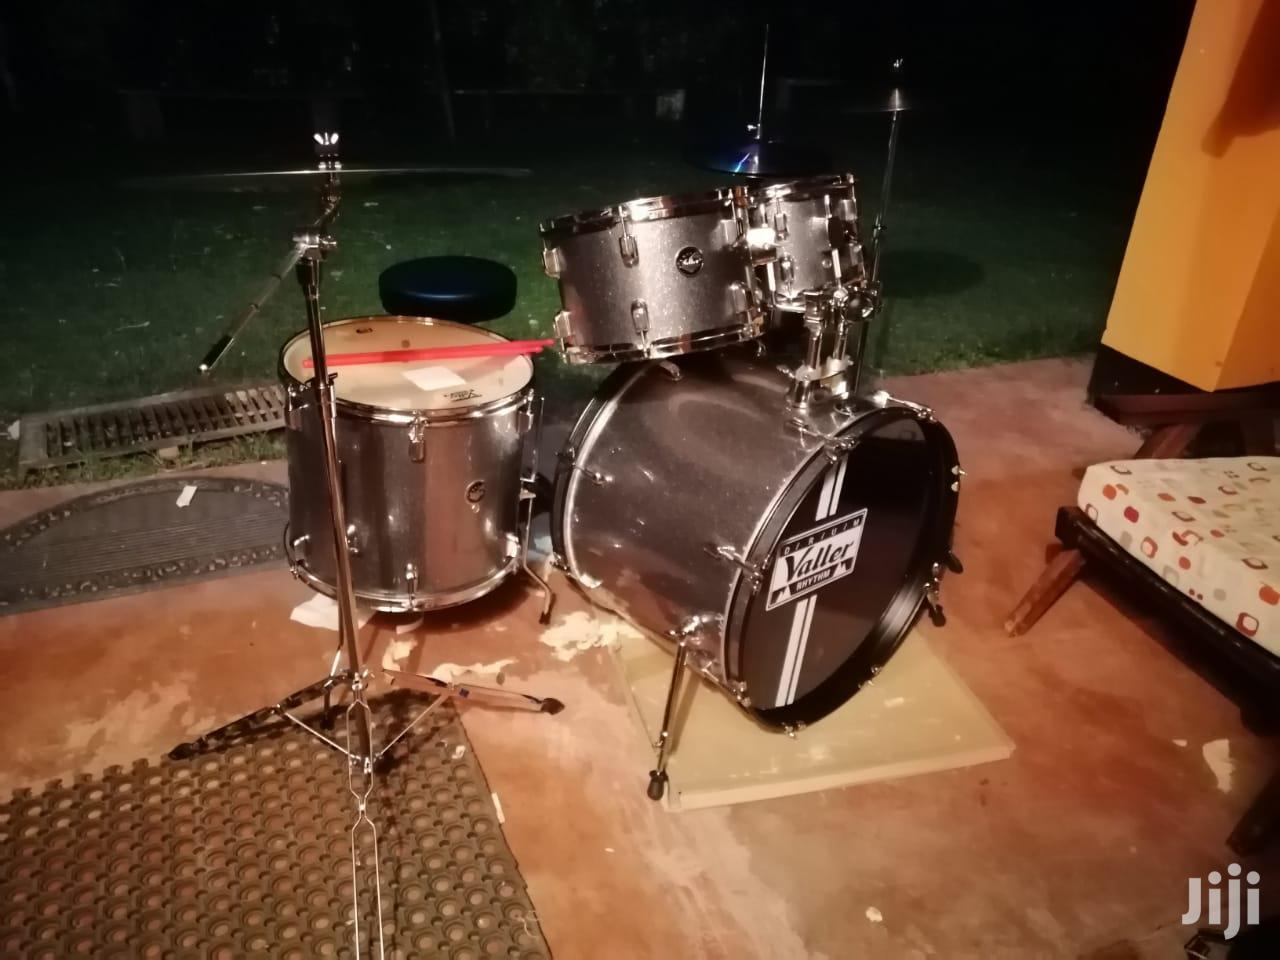 Valler Drumset | Musical Instruments & Gear for sale in Nairobi Central, Nairobi, Kenya